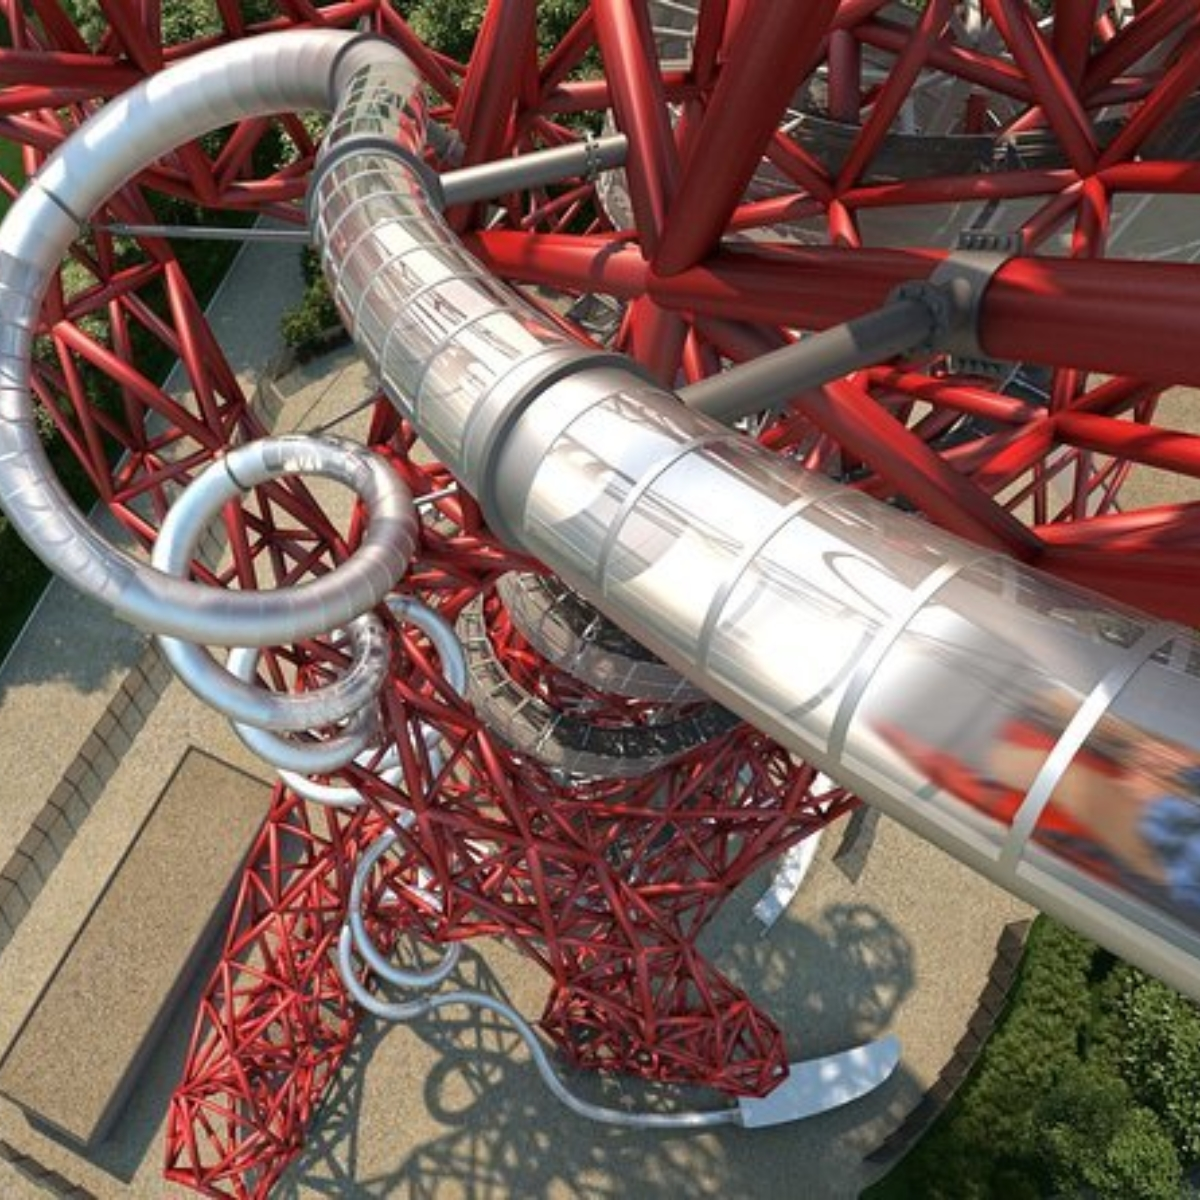 The Slide at the ArcelorMittal Orbit Images